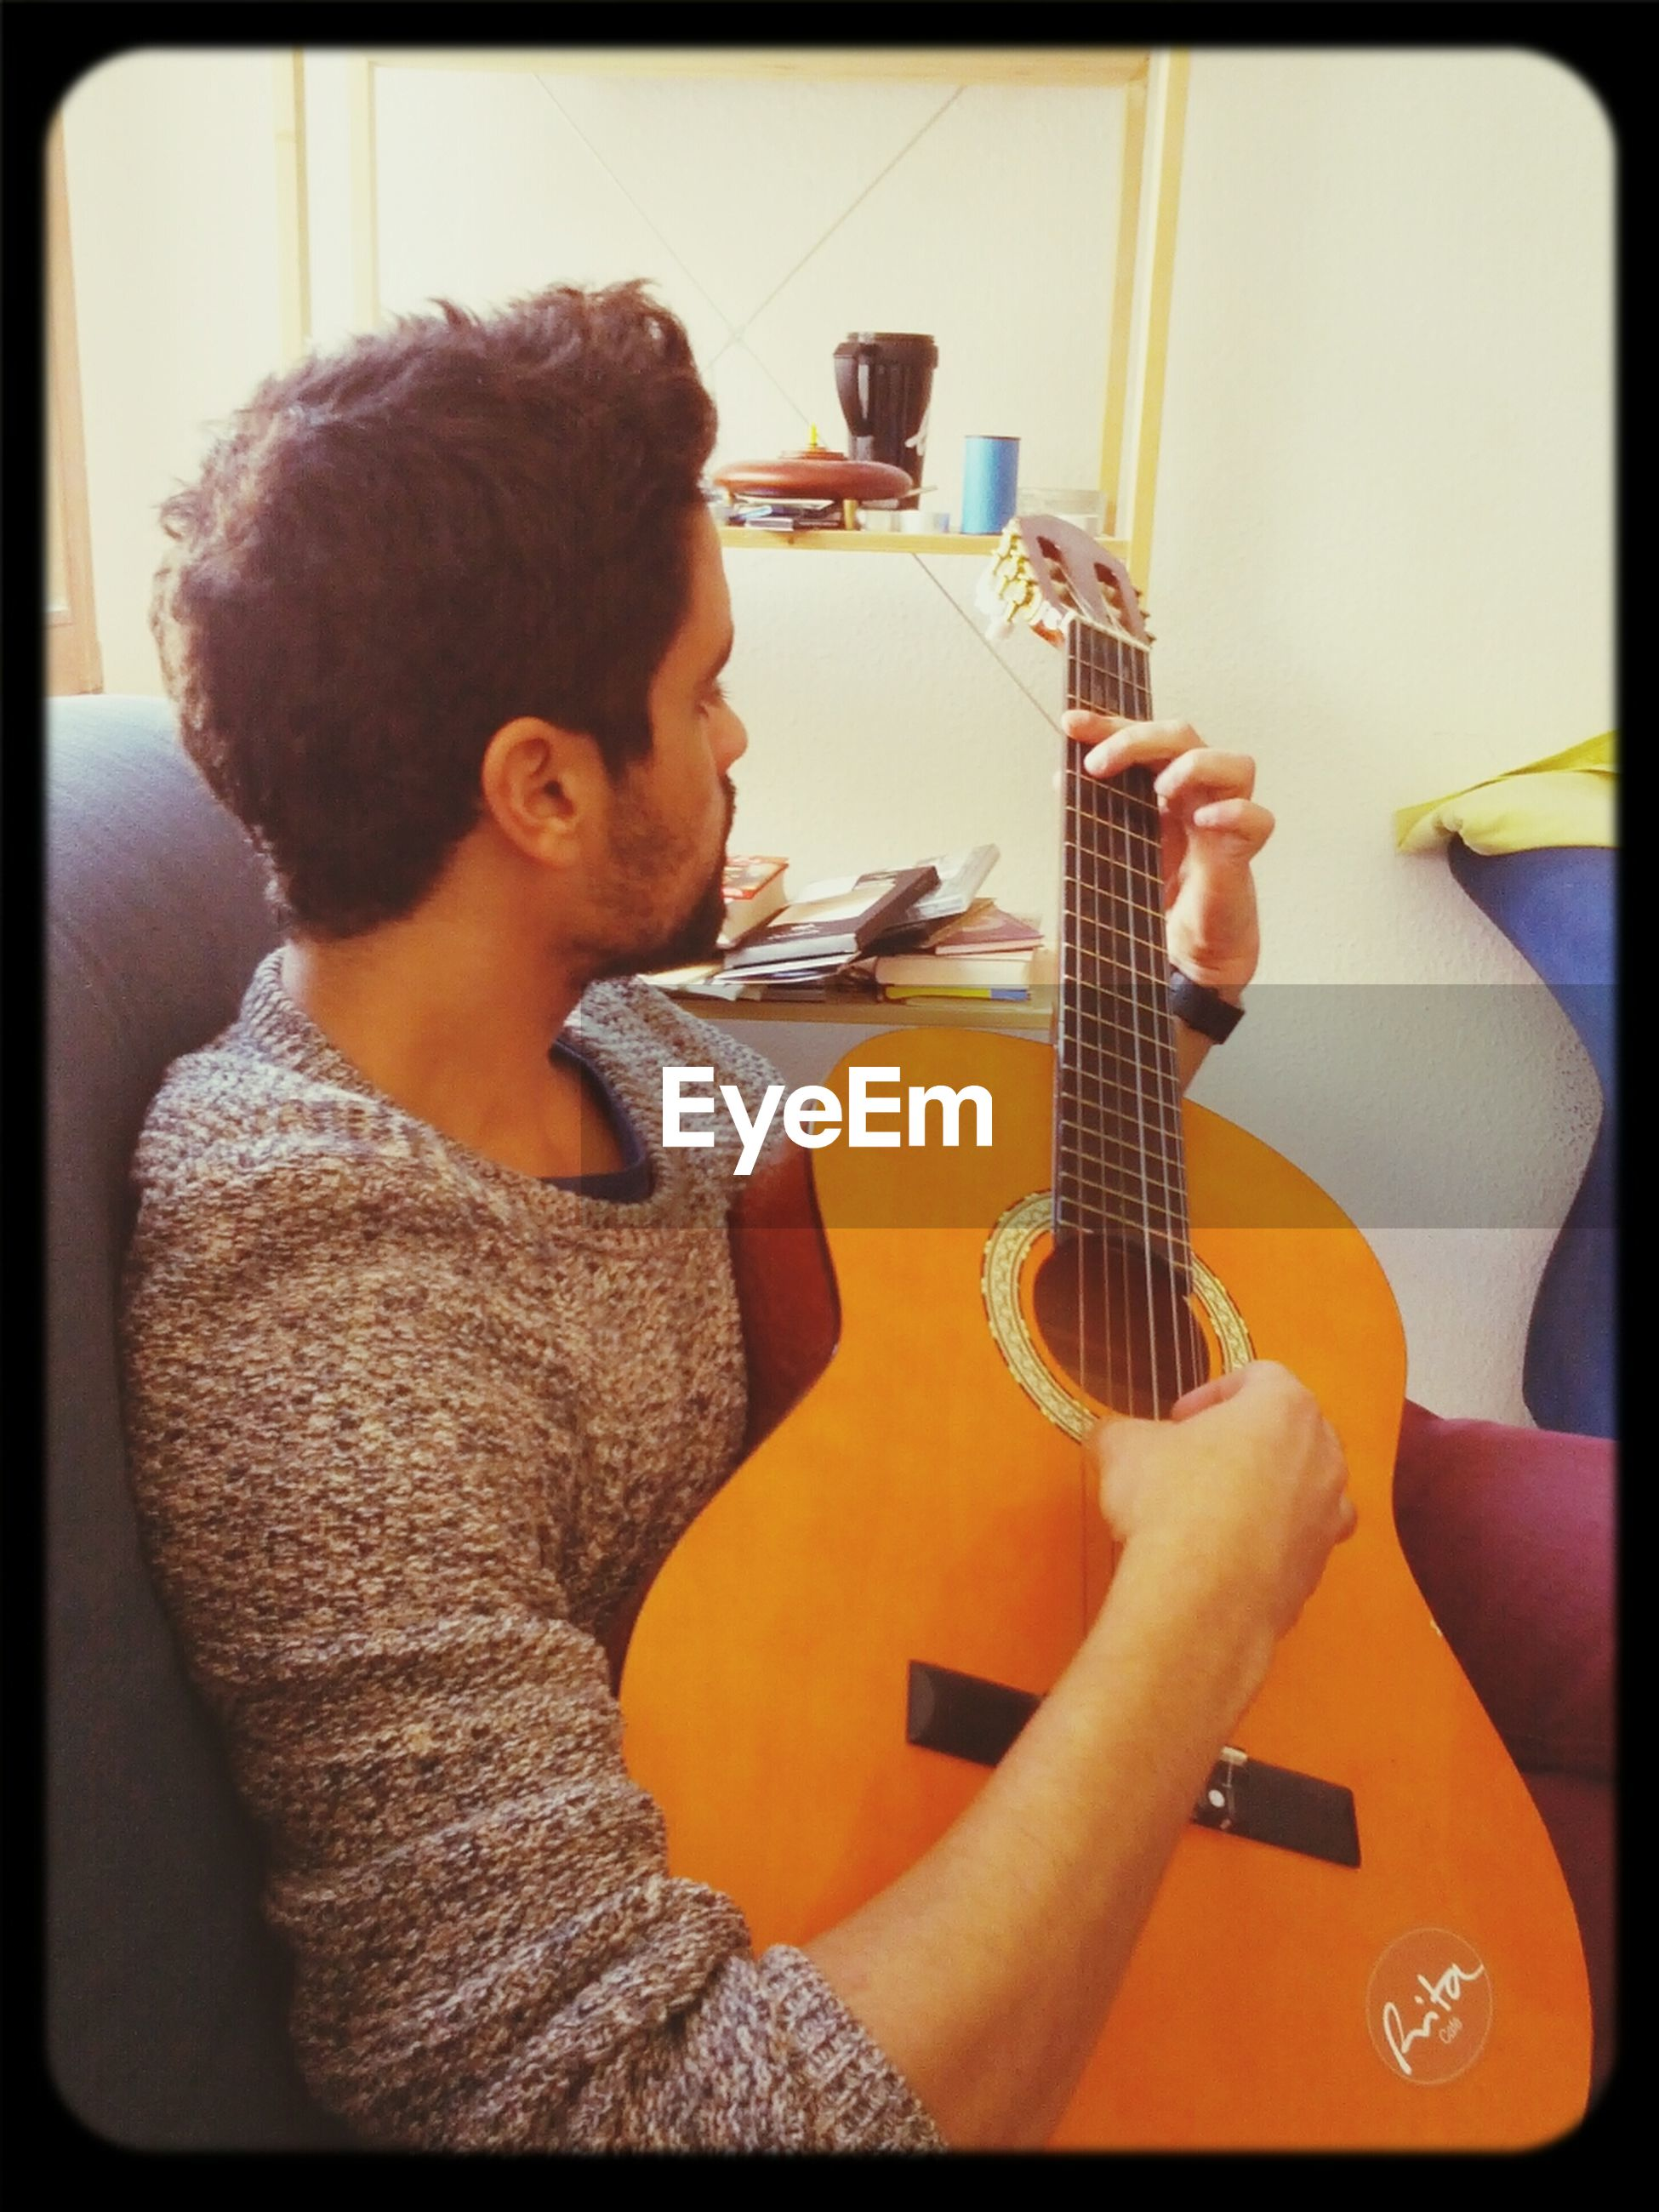 indoors, transfer print, musical instrument, guitar, music, holding, lifestyles, arts culture and entertainment, leisure activity, casual clothing, playing, auto post production filter, person, technology, wireless technology, home interior, front view, childhood